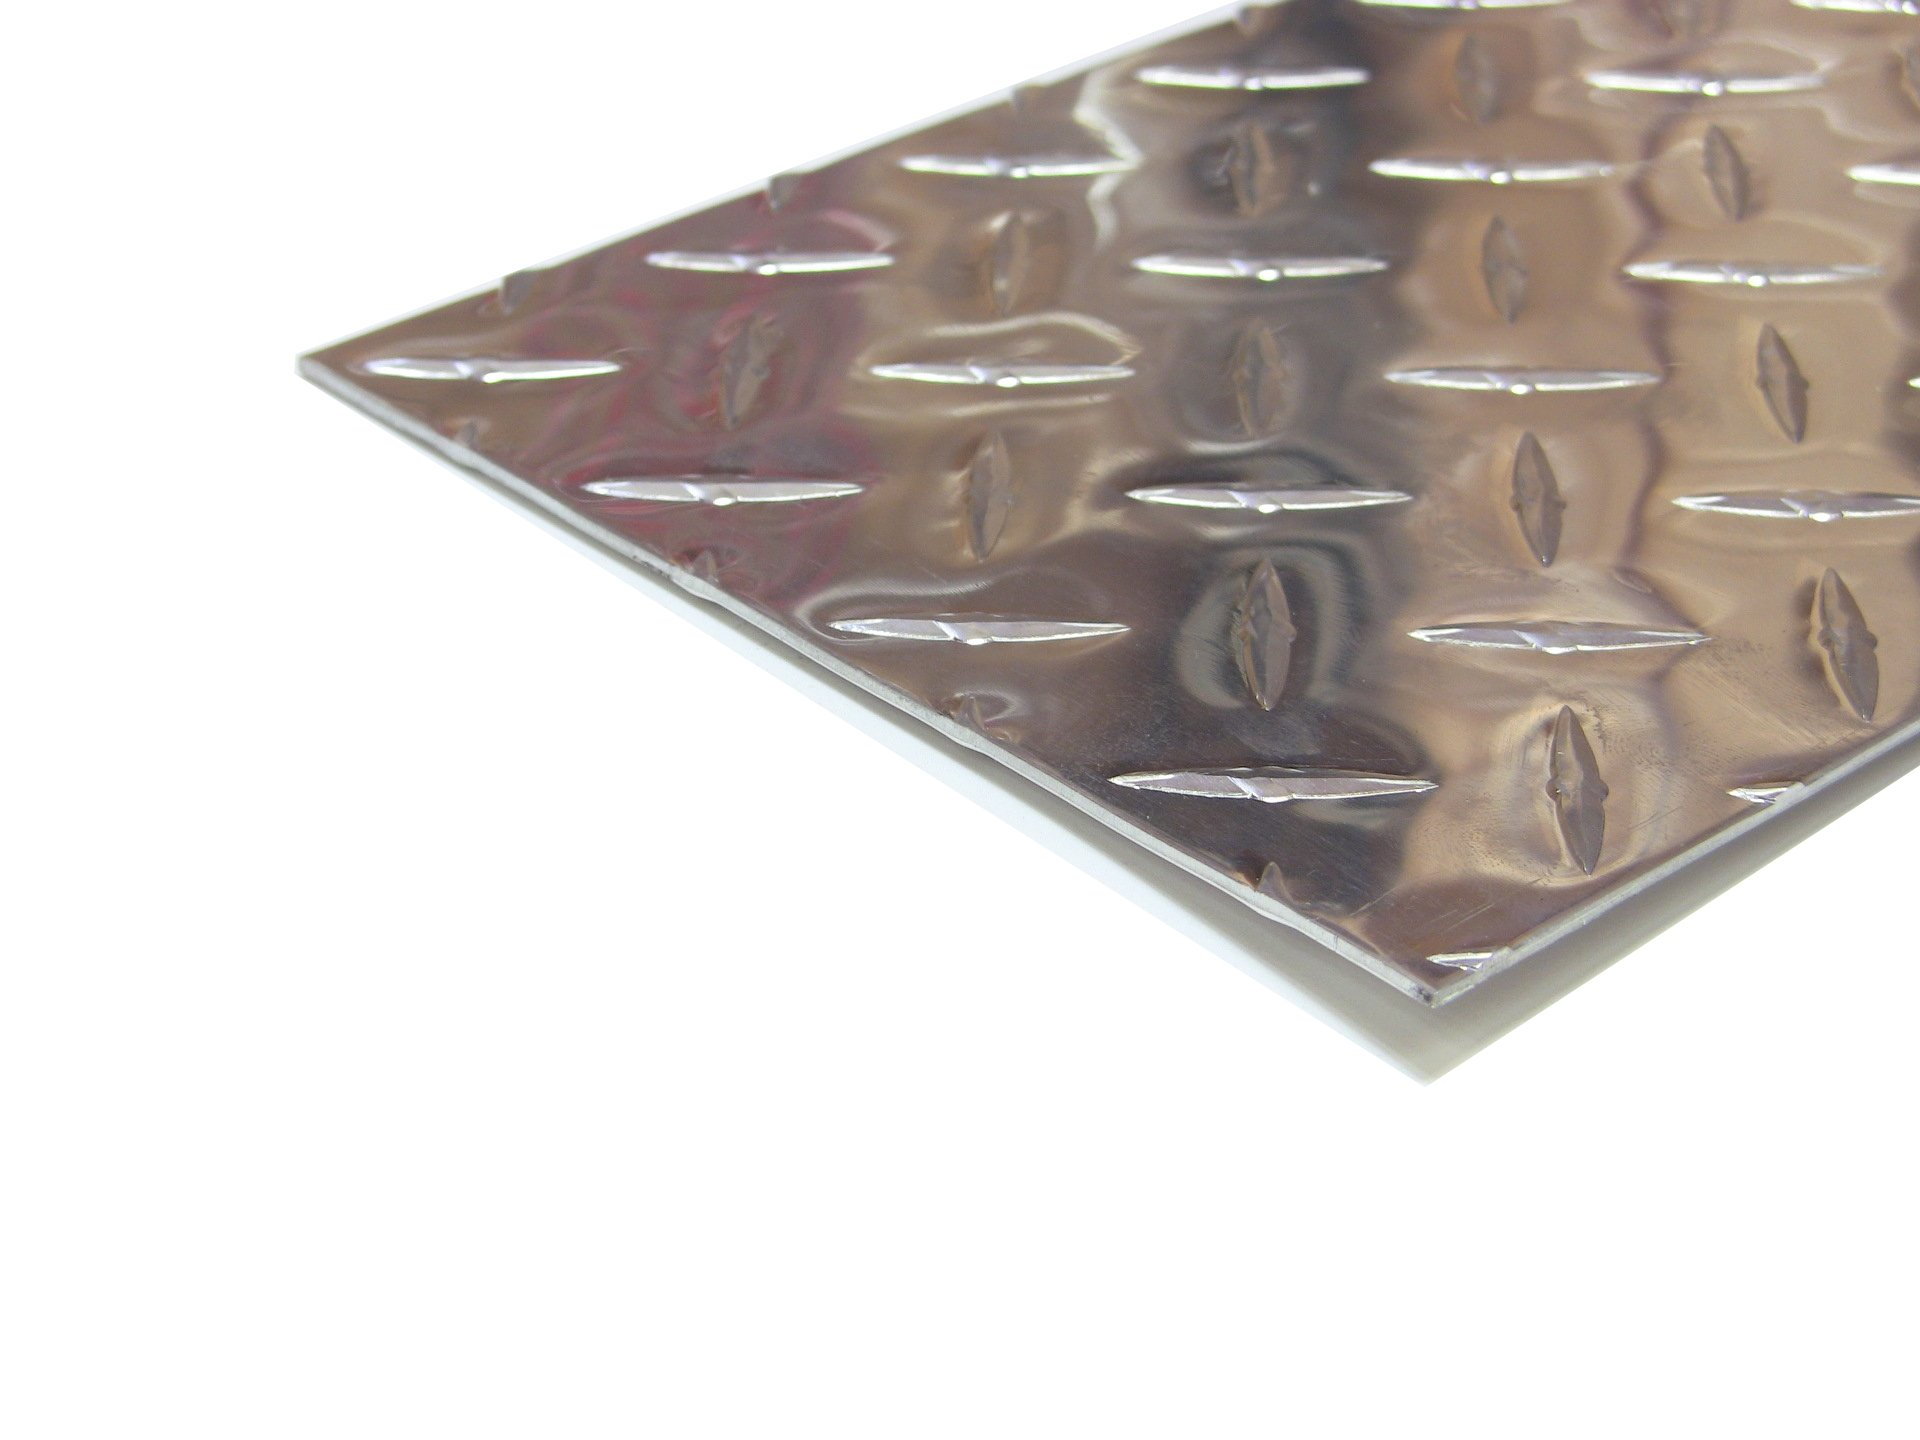 Aluminum Diamond Plate Door Kick Plate .062 x 6 x 30 in. w/out screws and holes   Kickplate (1/16 x 6 x 30 in.) UAAC